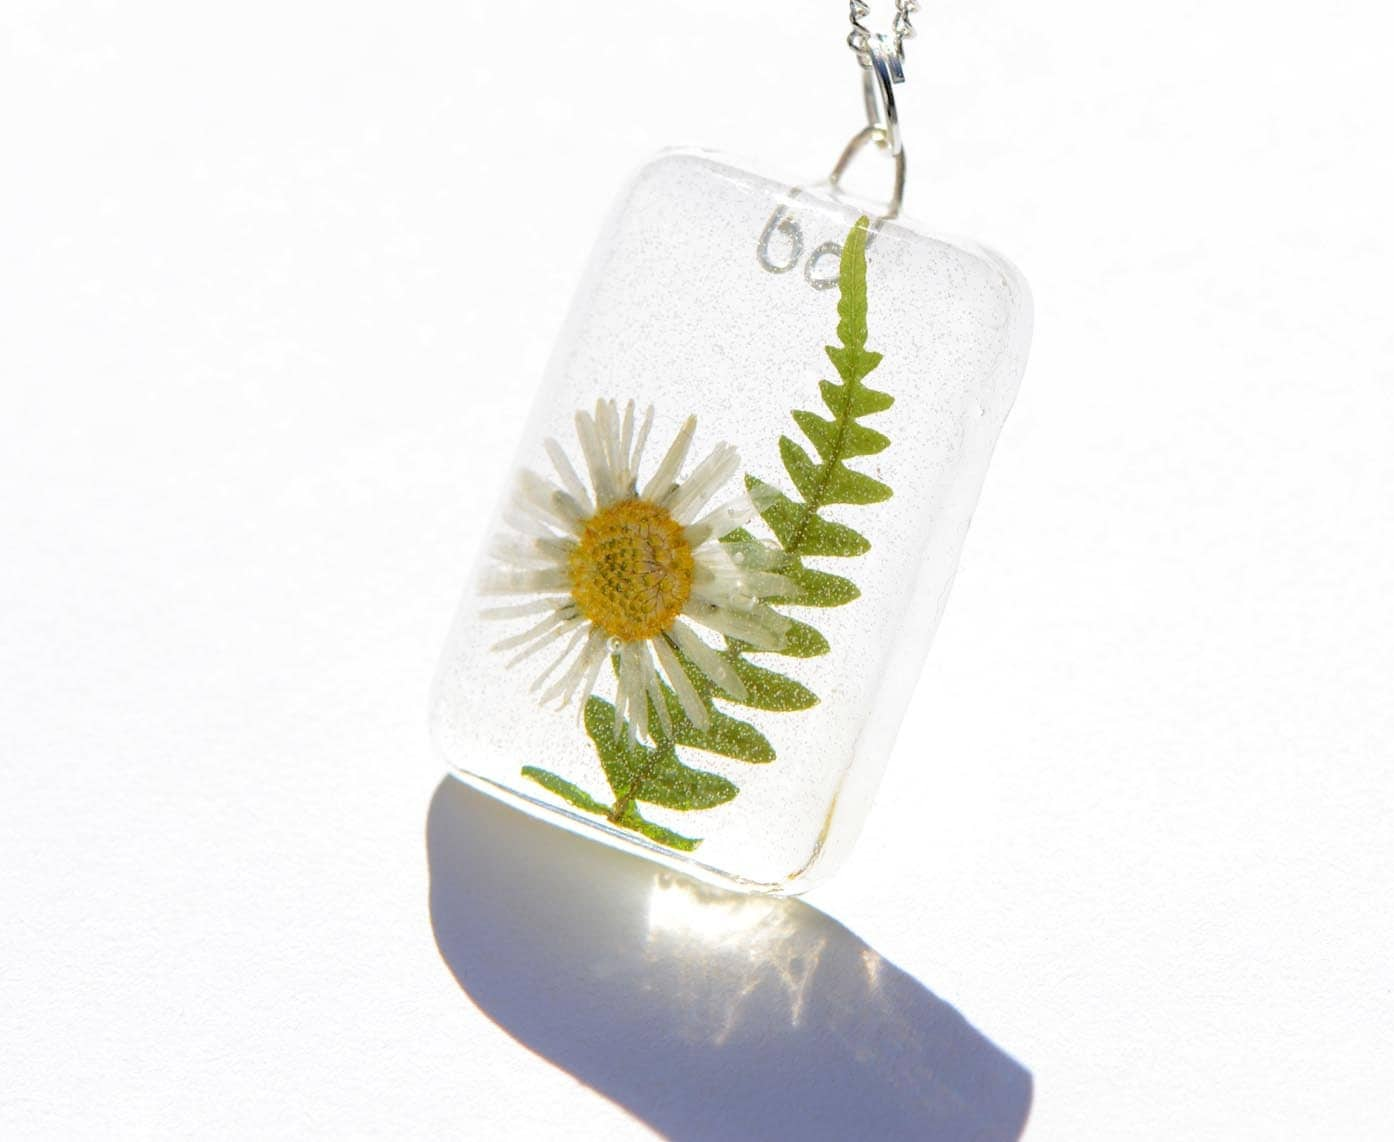 Romantic pendant real daisy flower necklace white English flower woodland resin pressed flower jewelry Spring sunshine green nature fresh - OrioleStudio